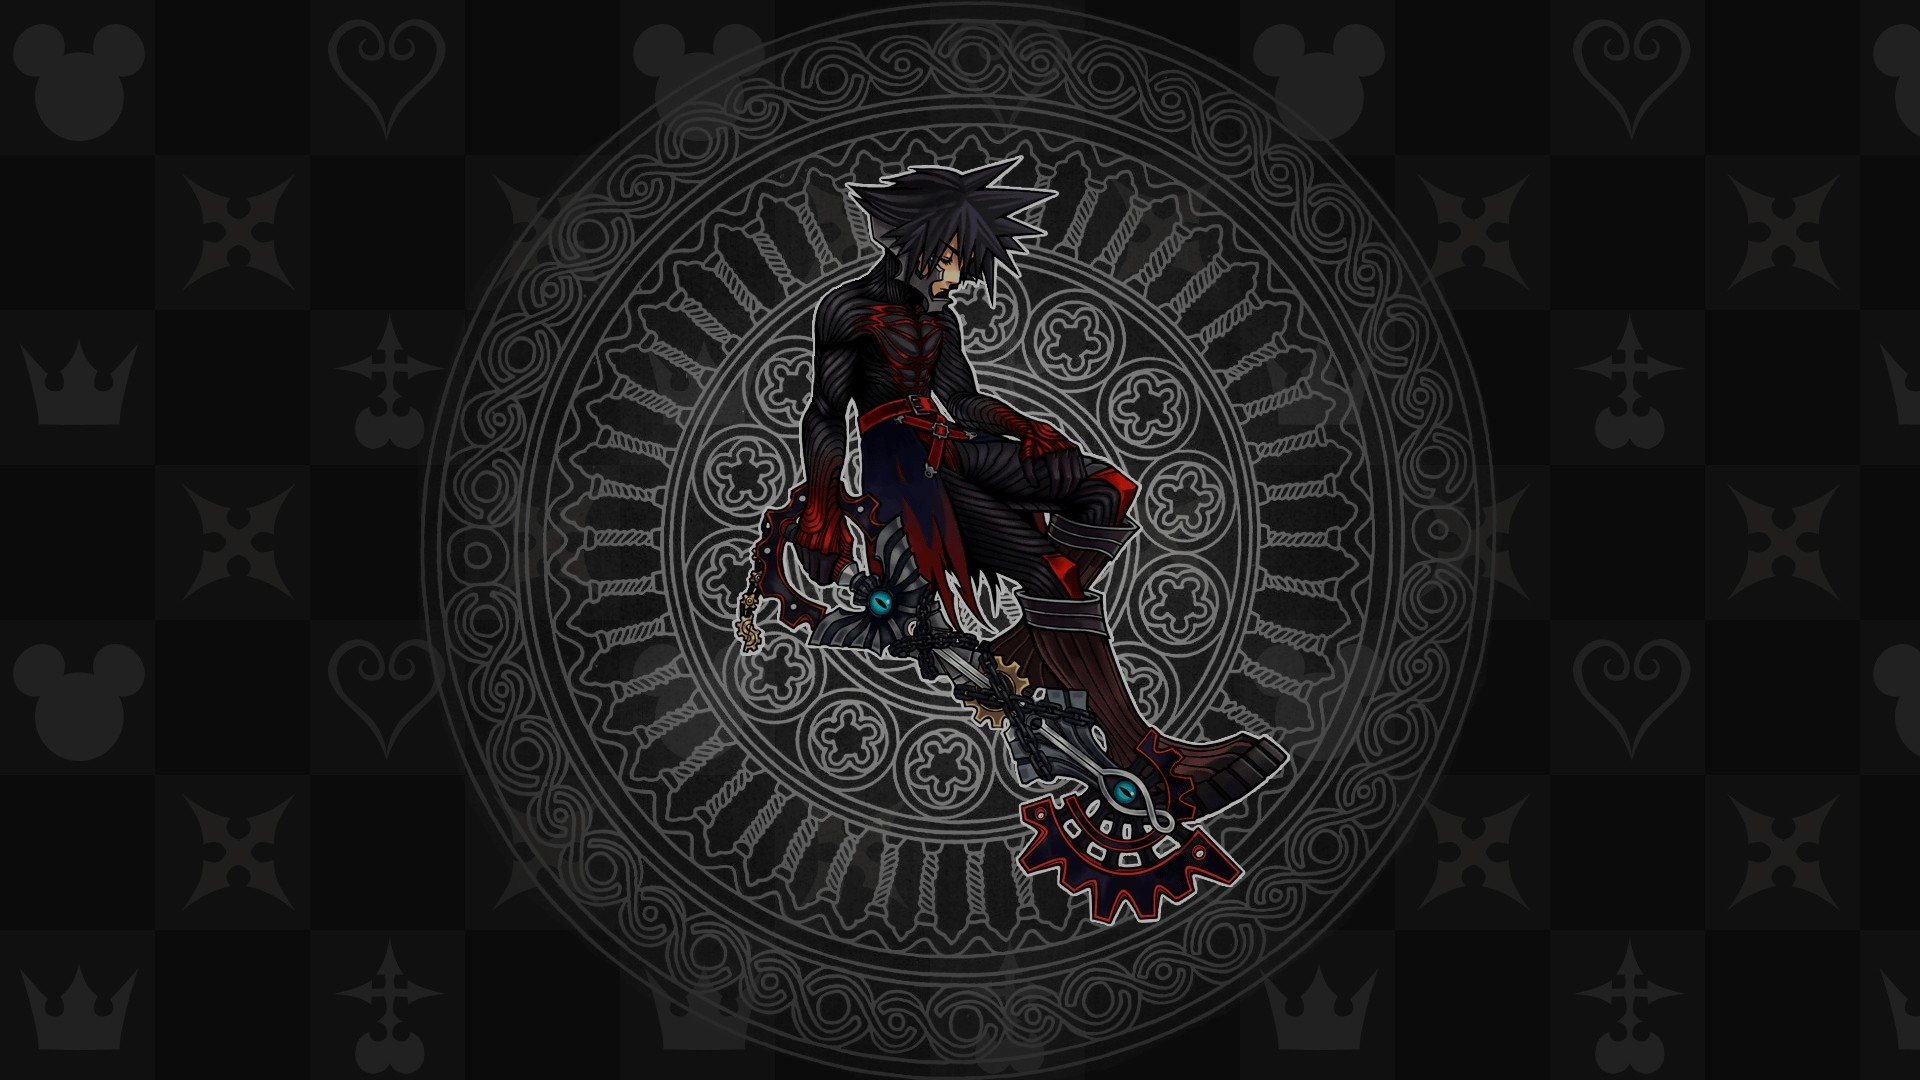 Kingdom Hearts 3 Wallpaper (80+ pictures)